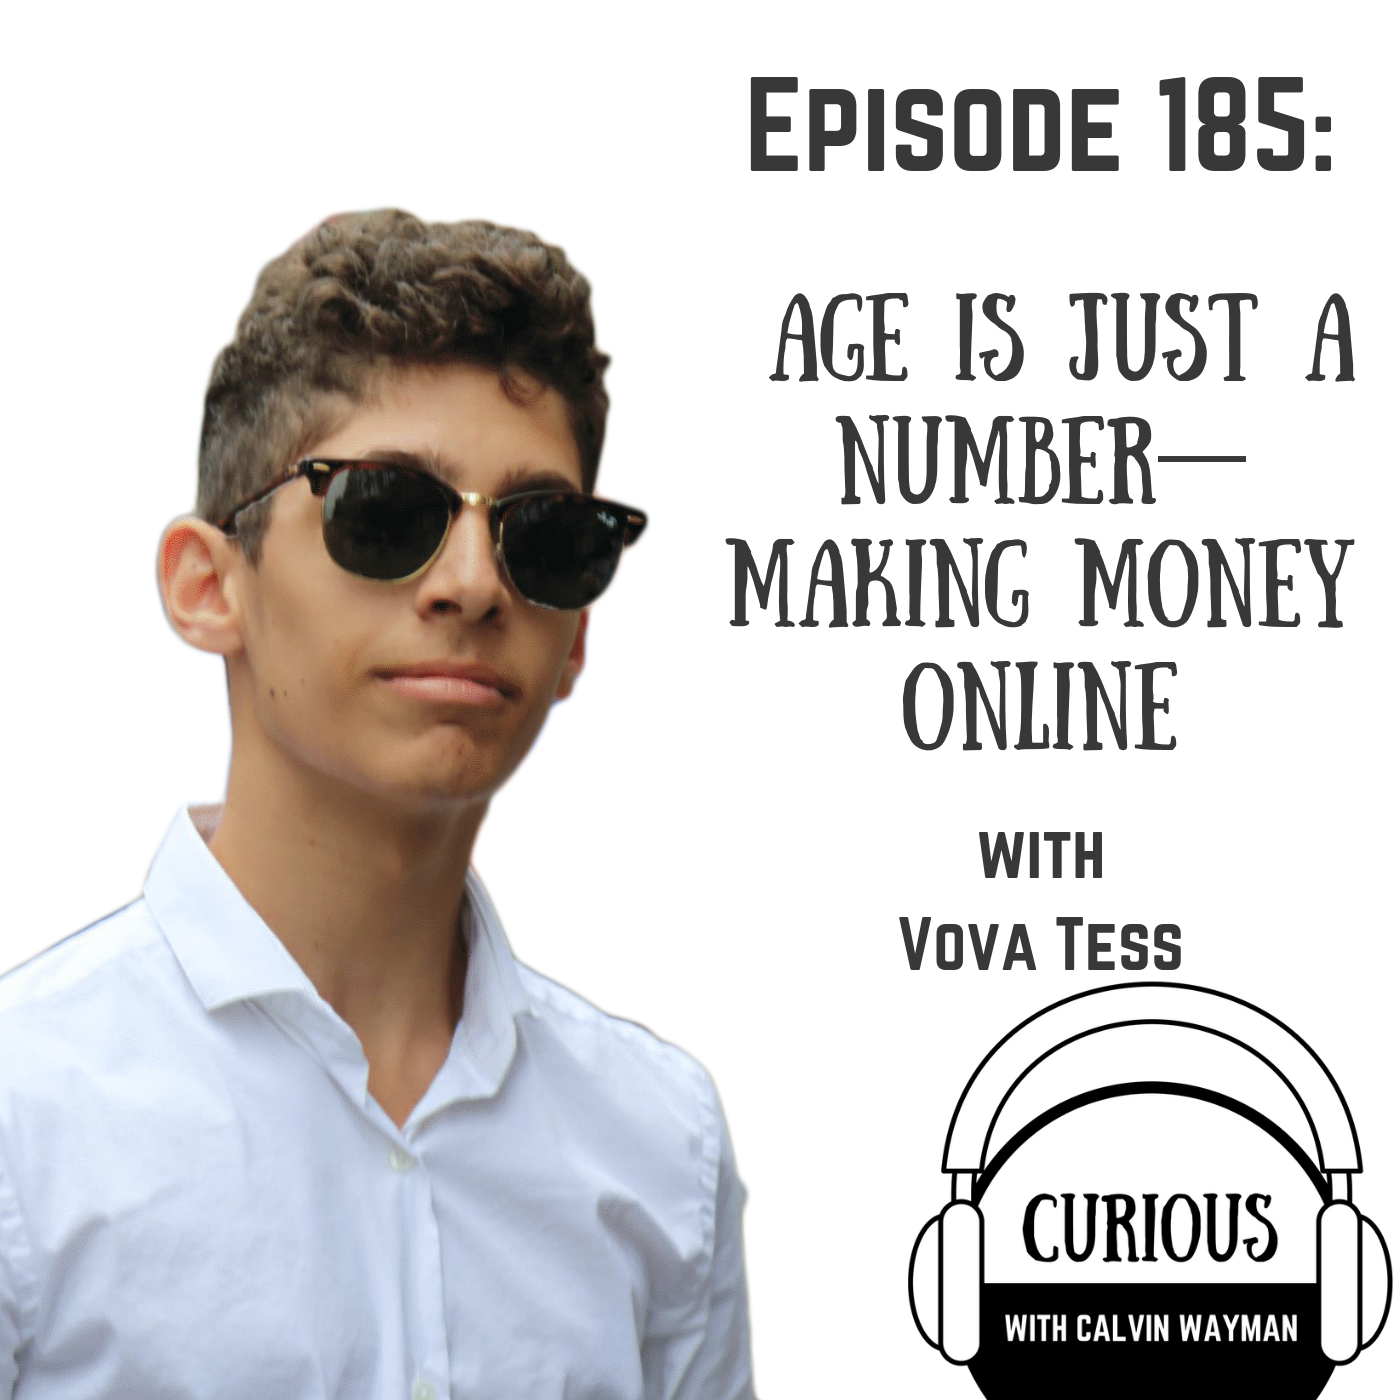 Ep185-Age Is Just A Number—Making Money Online - With 17